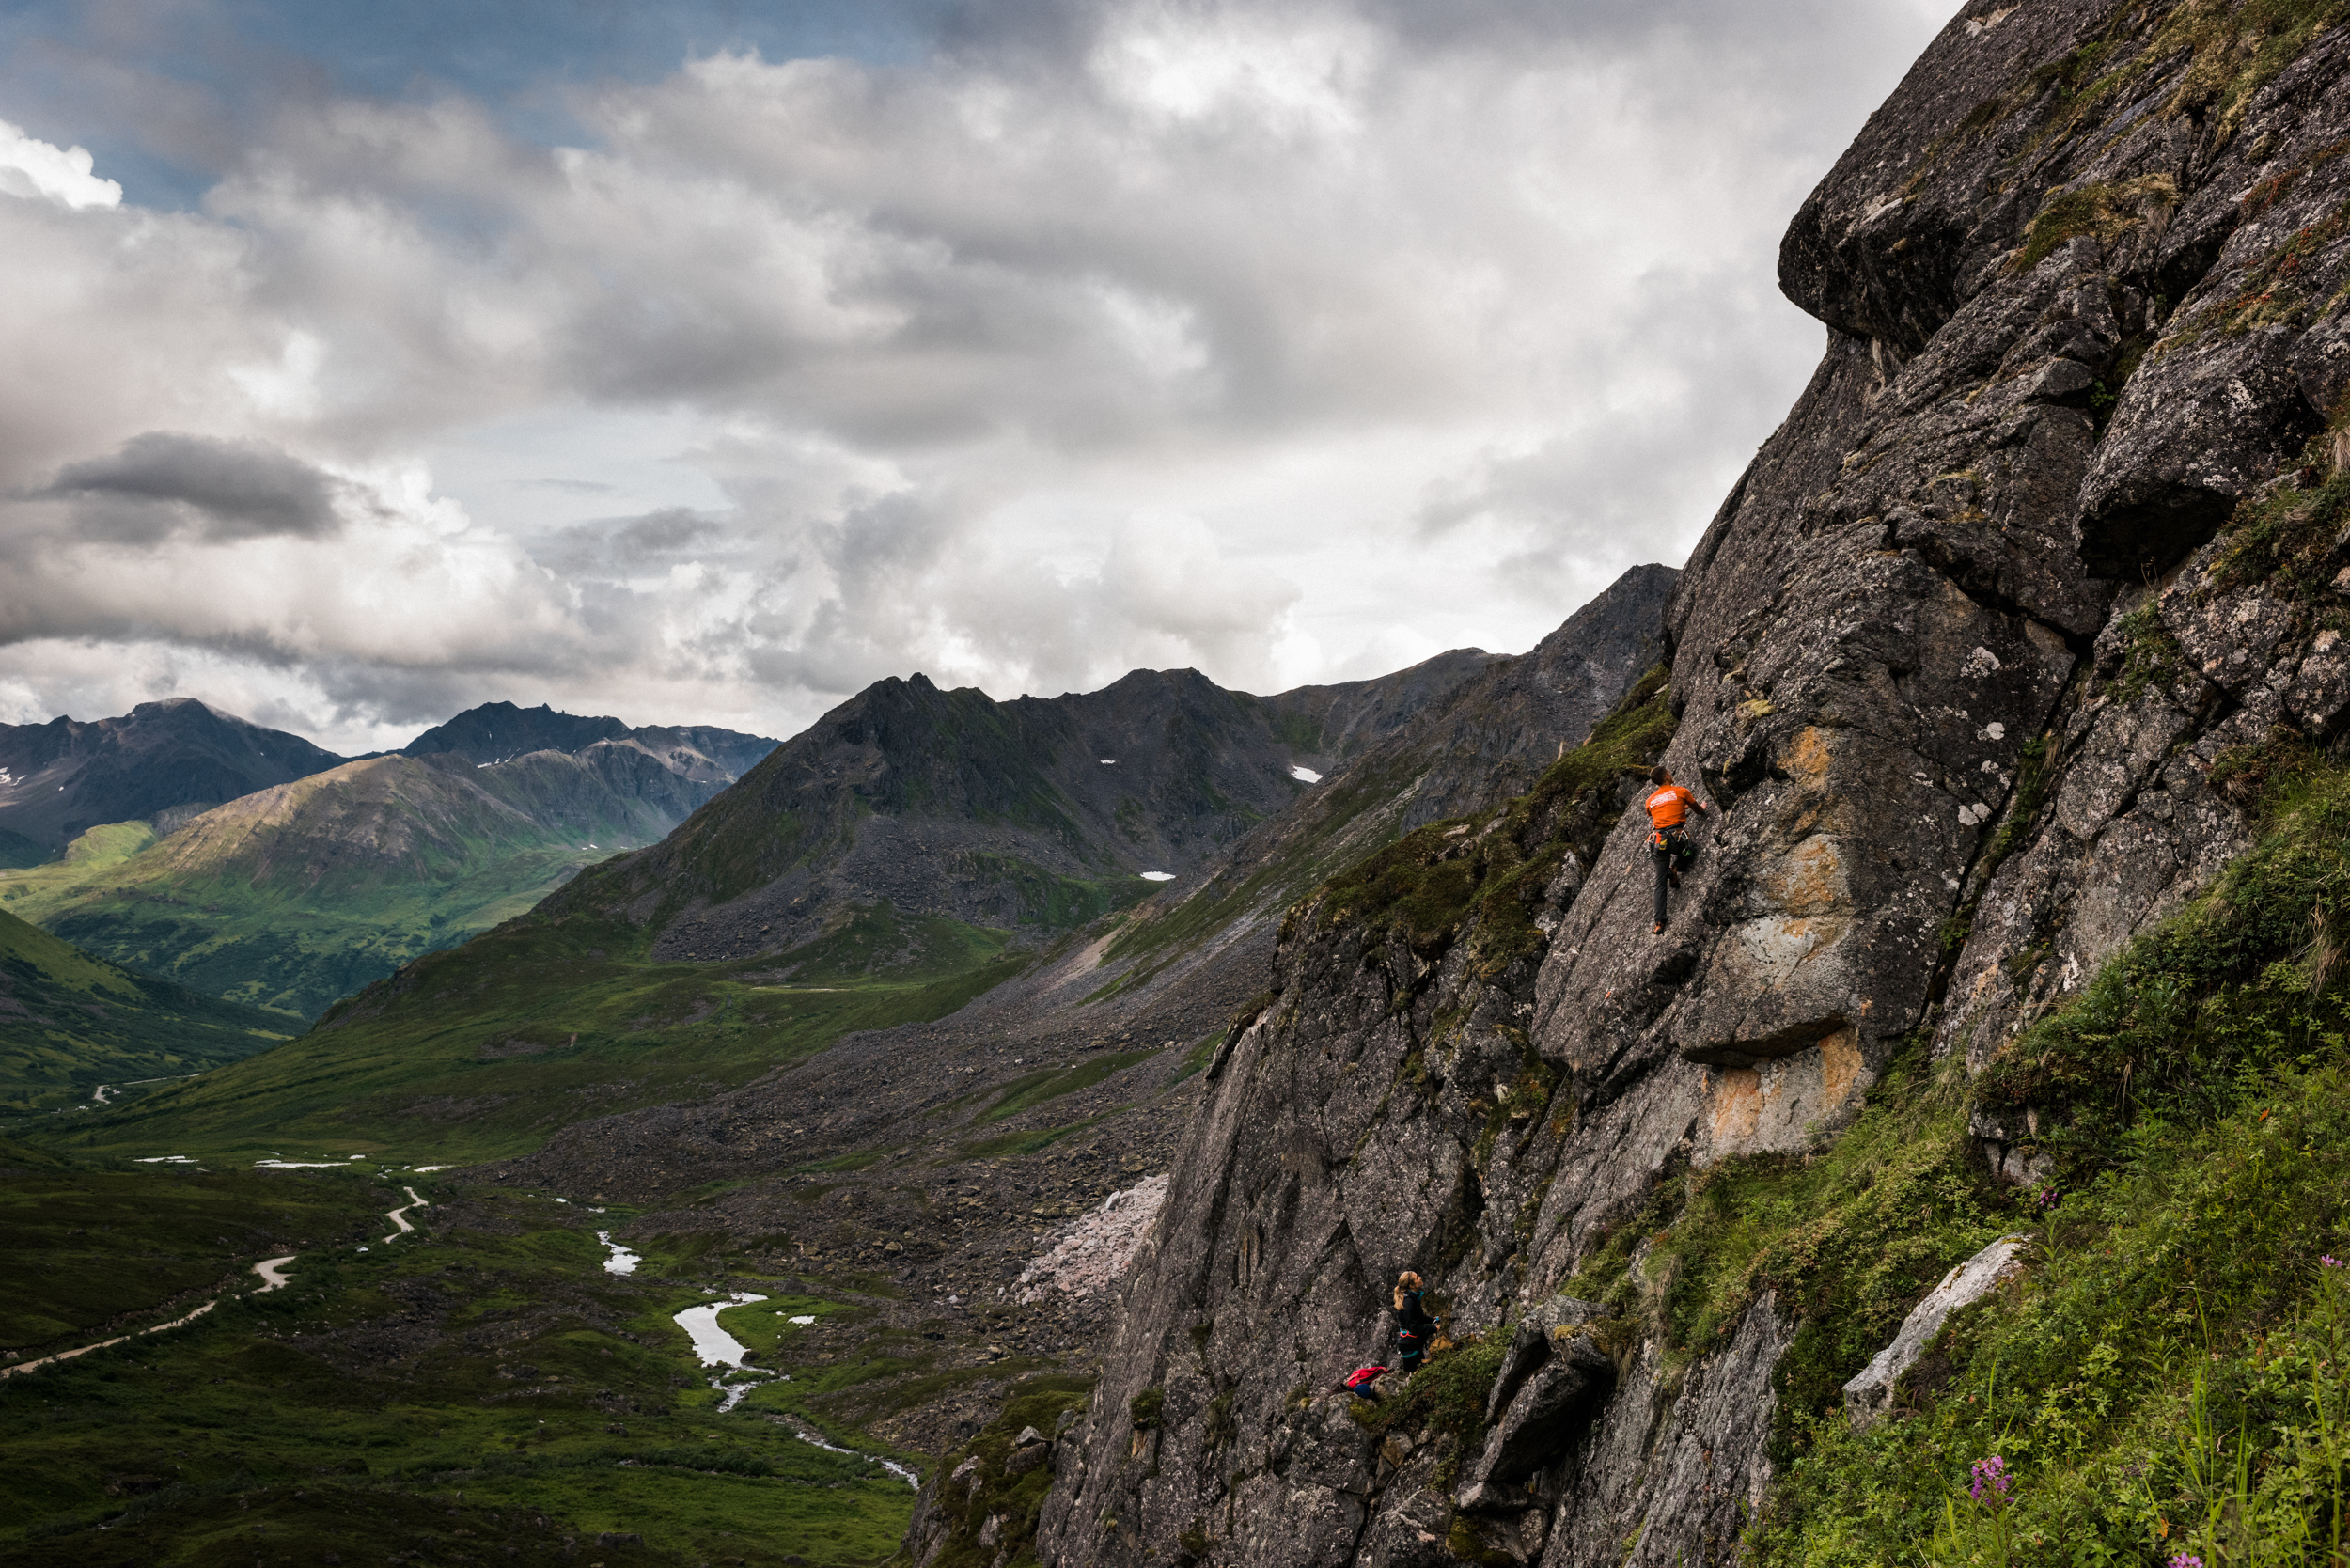 TaraShupe_Photography_Alaska_RockClimbing_HatchersPass_Travel_Photographer_Women_Adventure_046.jpg